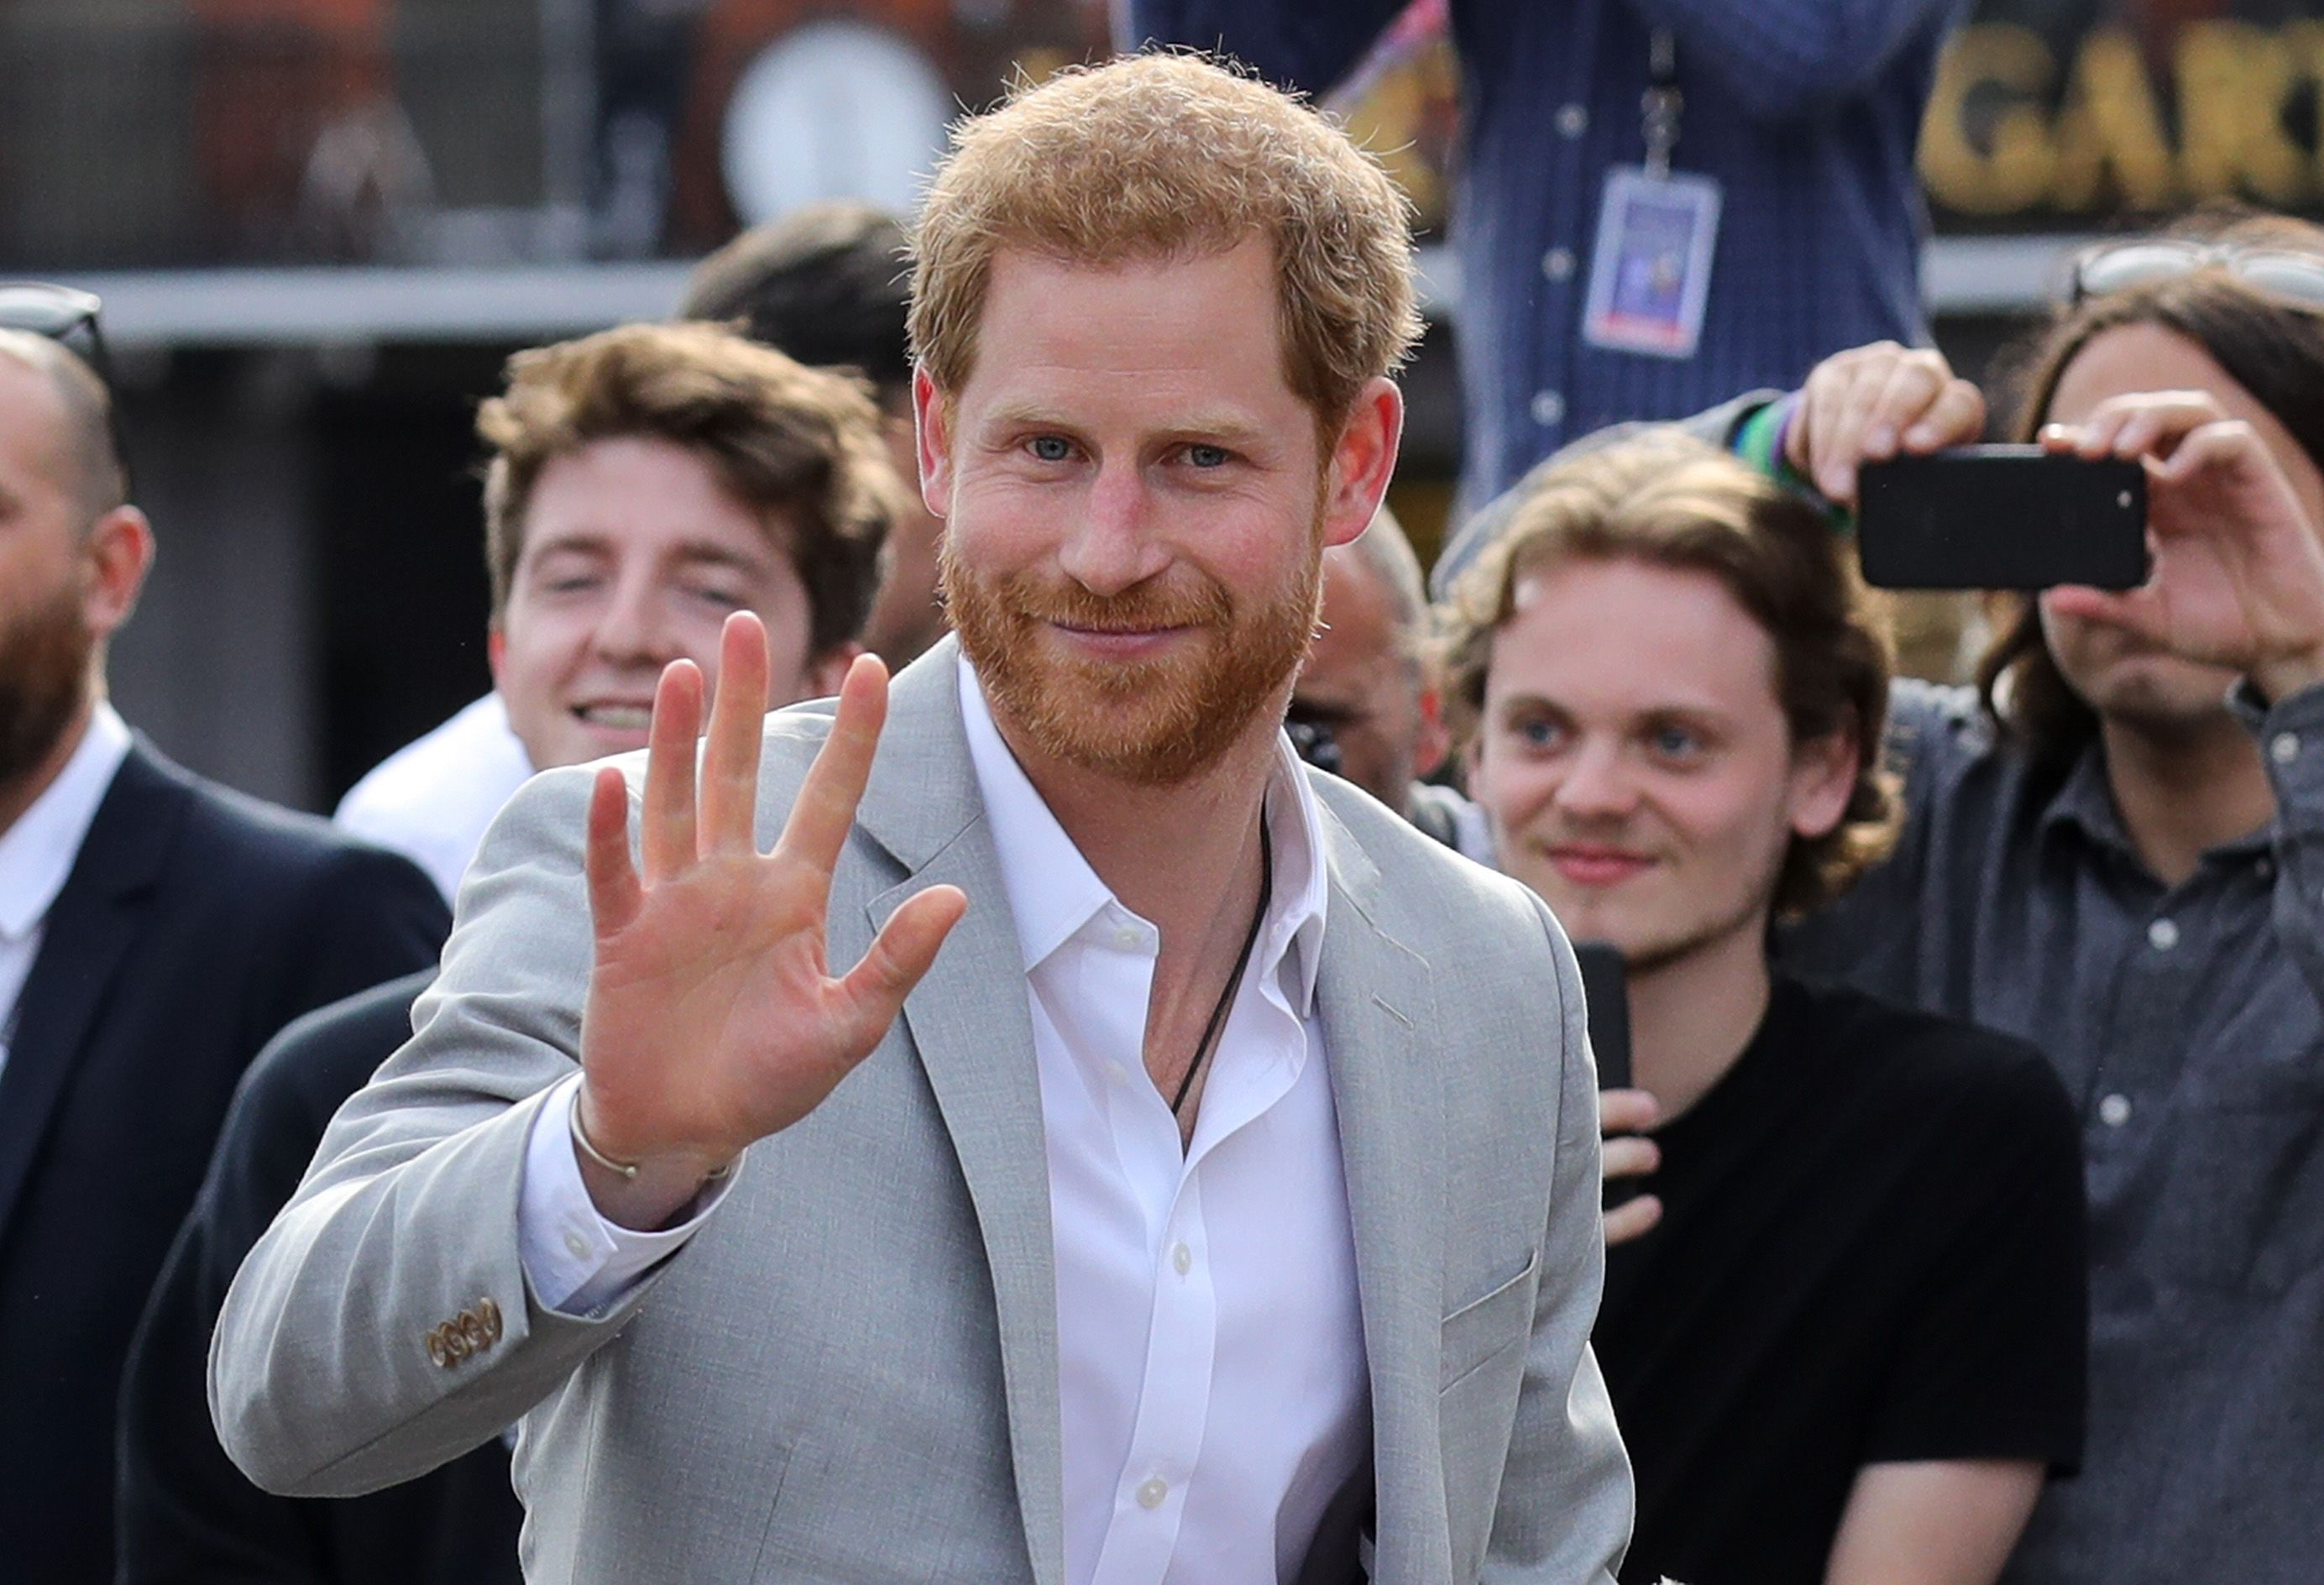 Prince Harry Is Reportedly in Talks to Do an Interview Series with Goldman Sachs